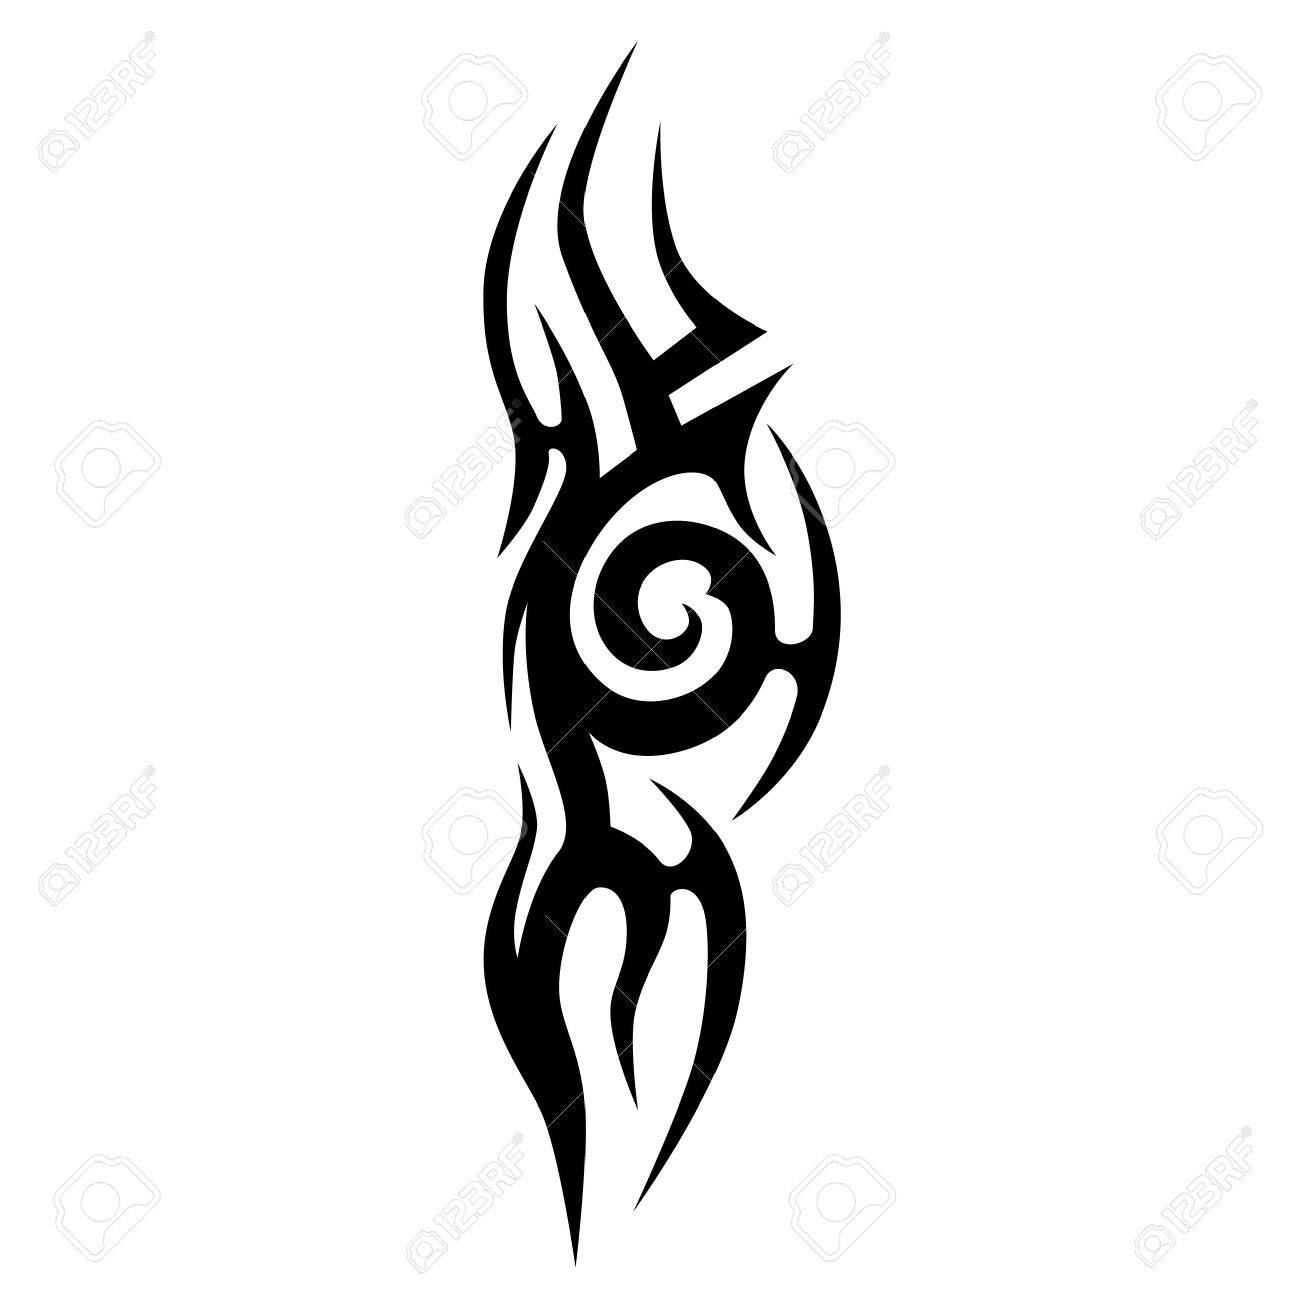 scroll tattoo tribal vector designs tribal tattoos art tribal rh 123rf com tattoo vector image tattoo victor ny